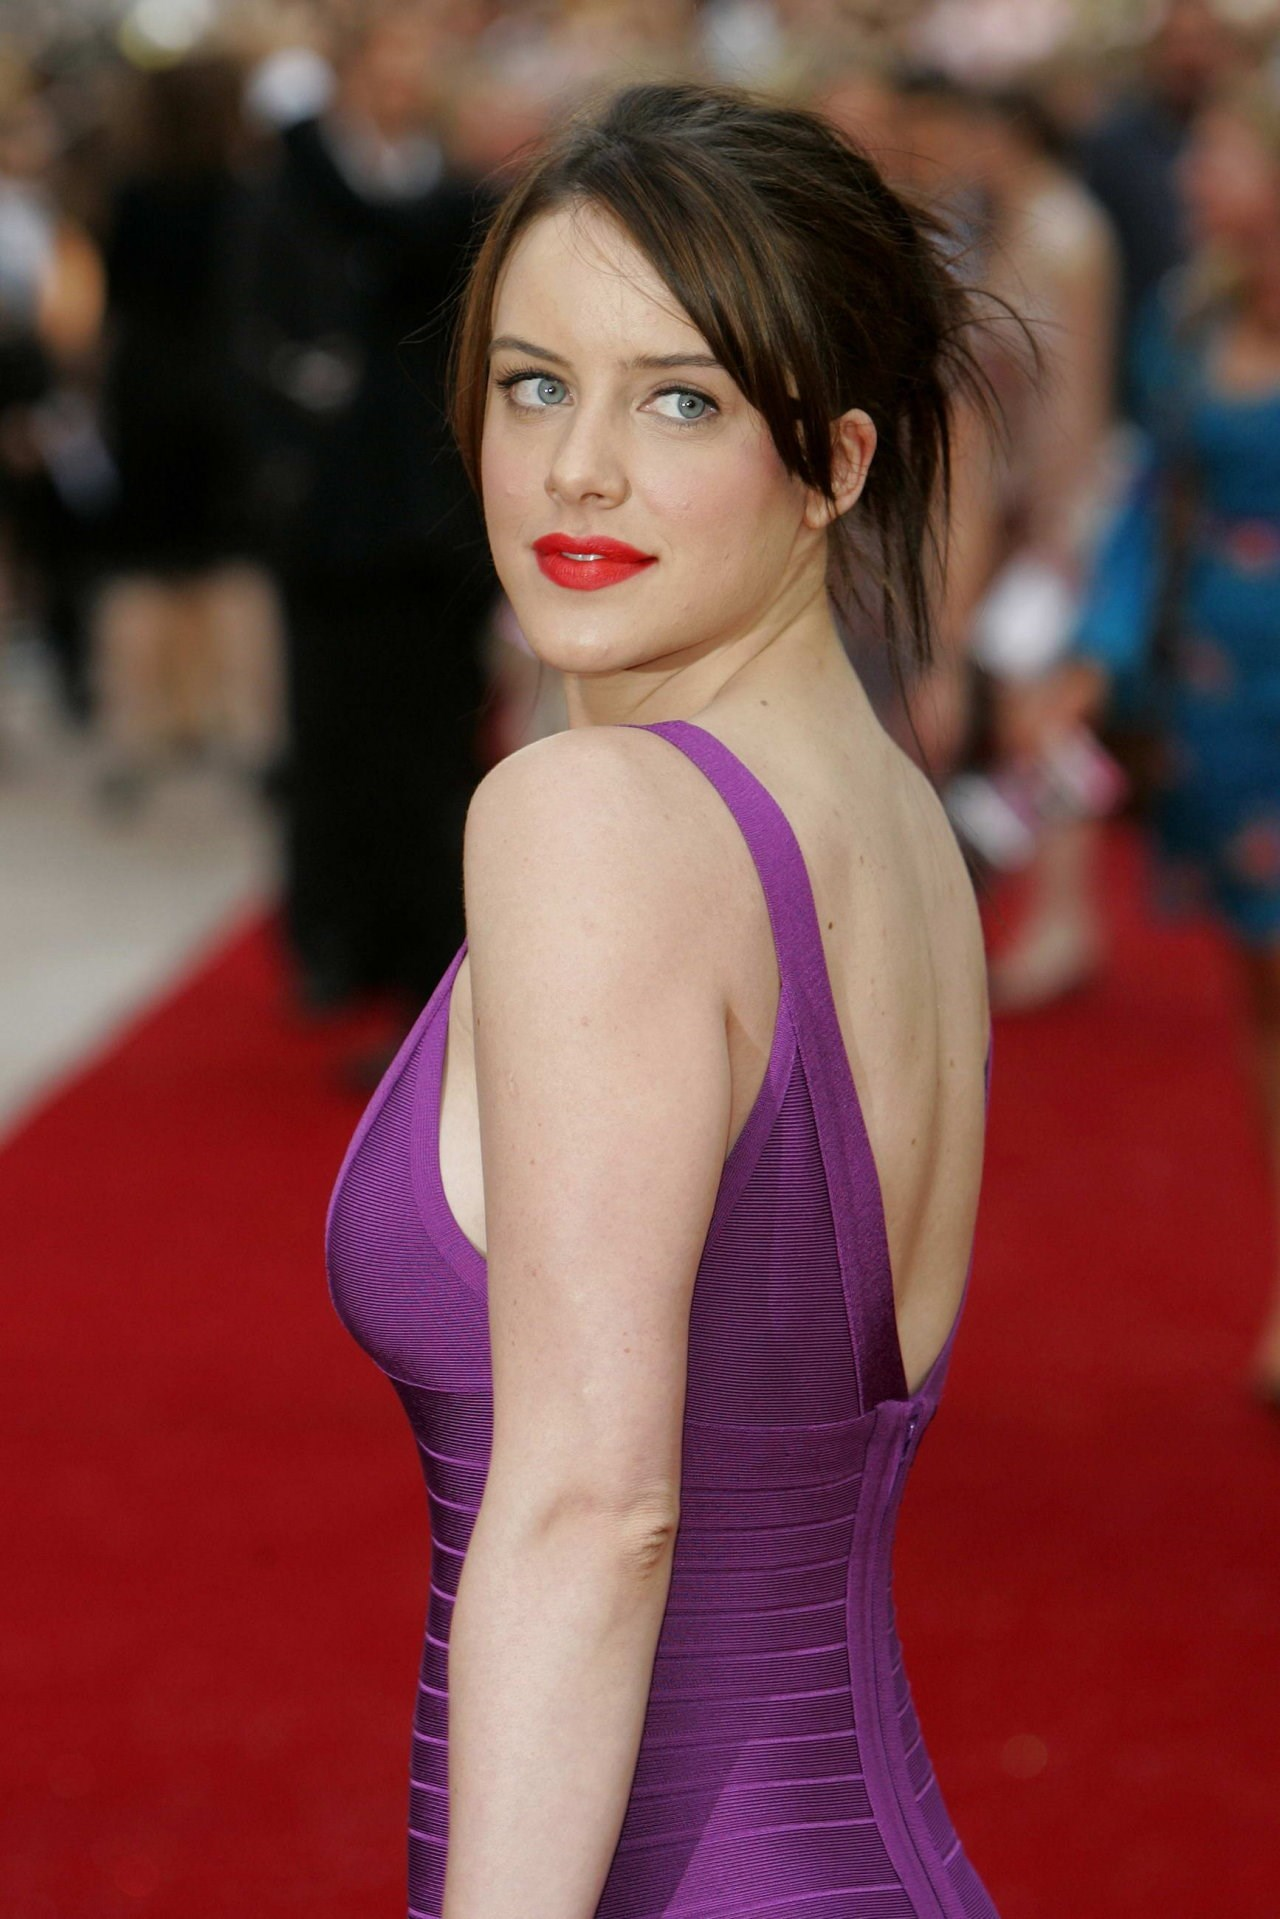 michelle ryan actresses merlin celebrities actress tv wiki wallpapers famous star bionic singers known